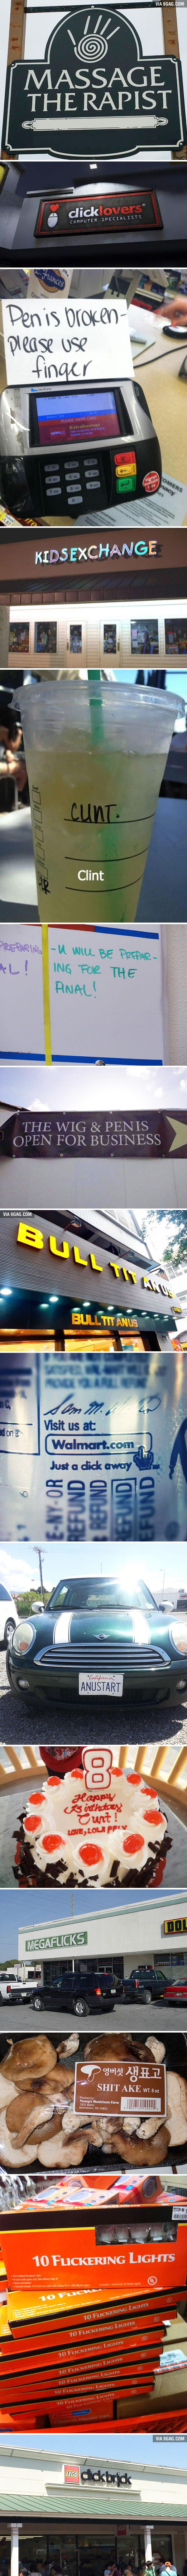 Bad Letter Spacing Examples That Made All The Difference